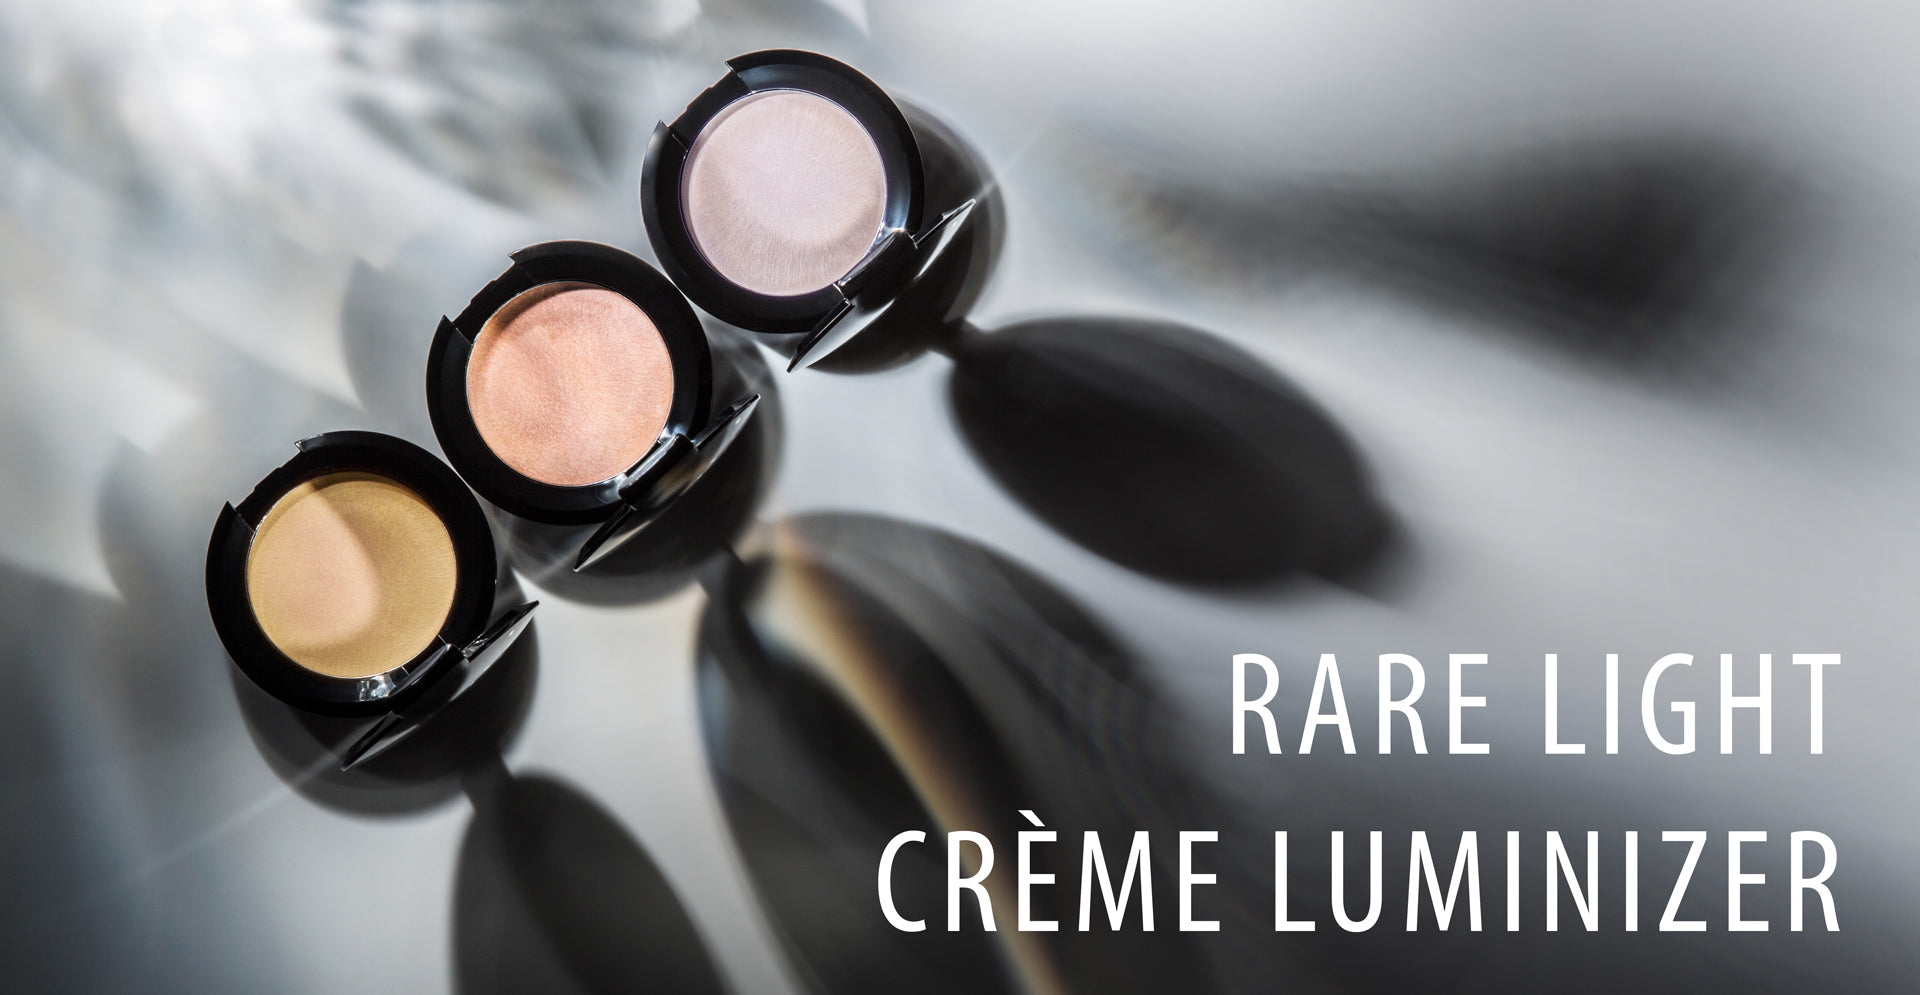 Rare Light Creme Luminizer natural highlighter